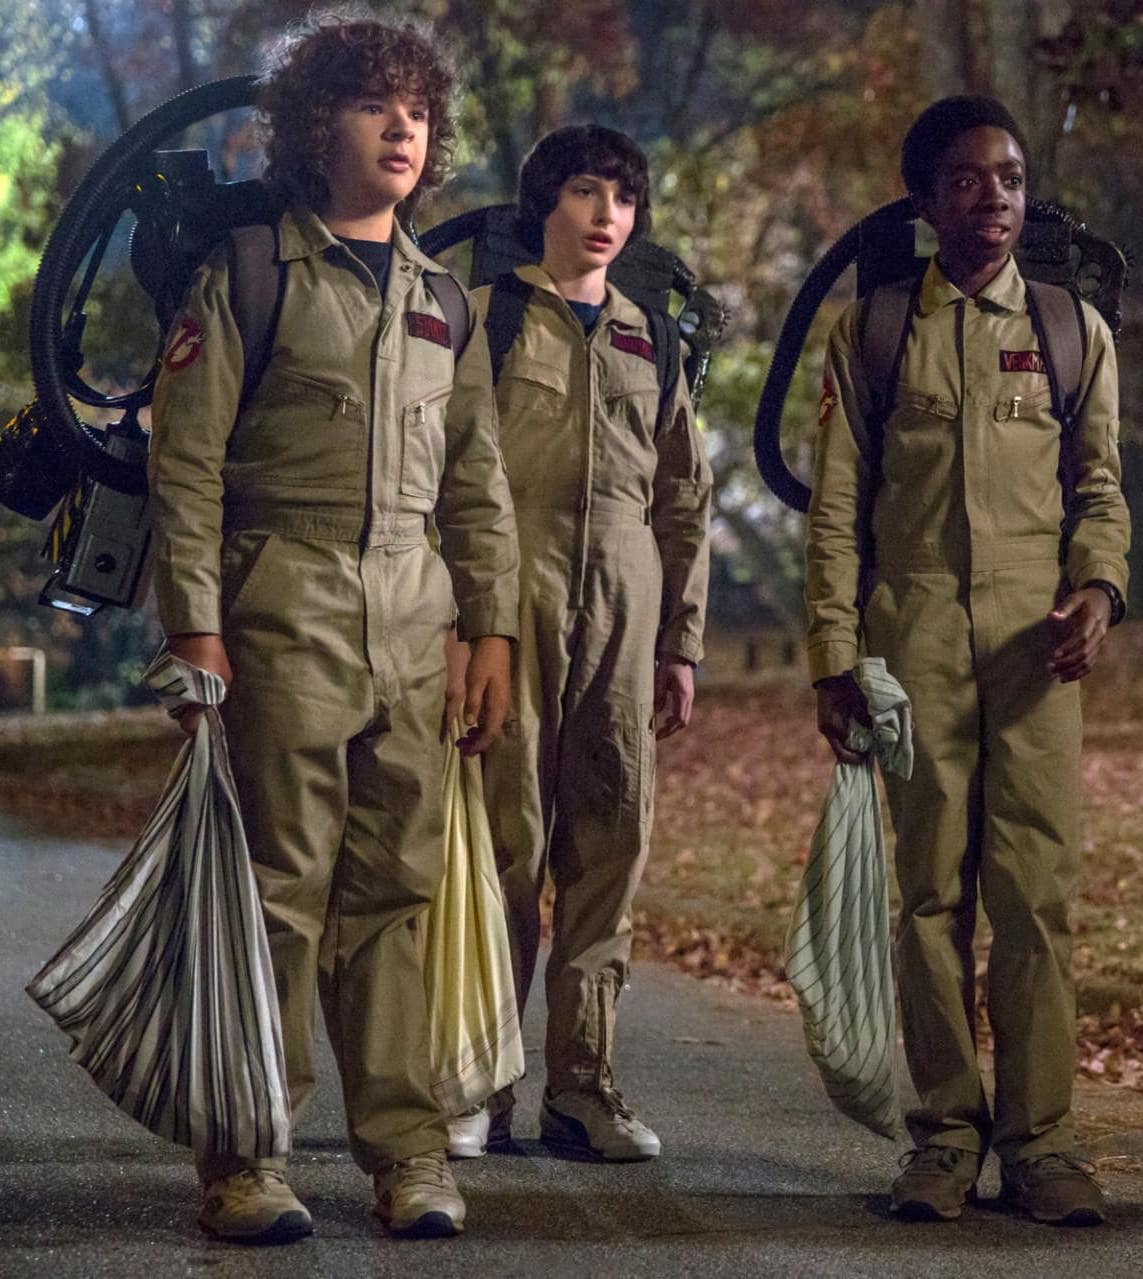 1376645d507dff4725ce598728926454 20 Things You Didn't Know About Stranger Things